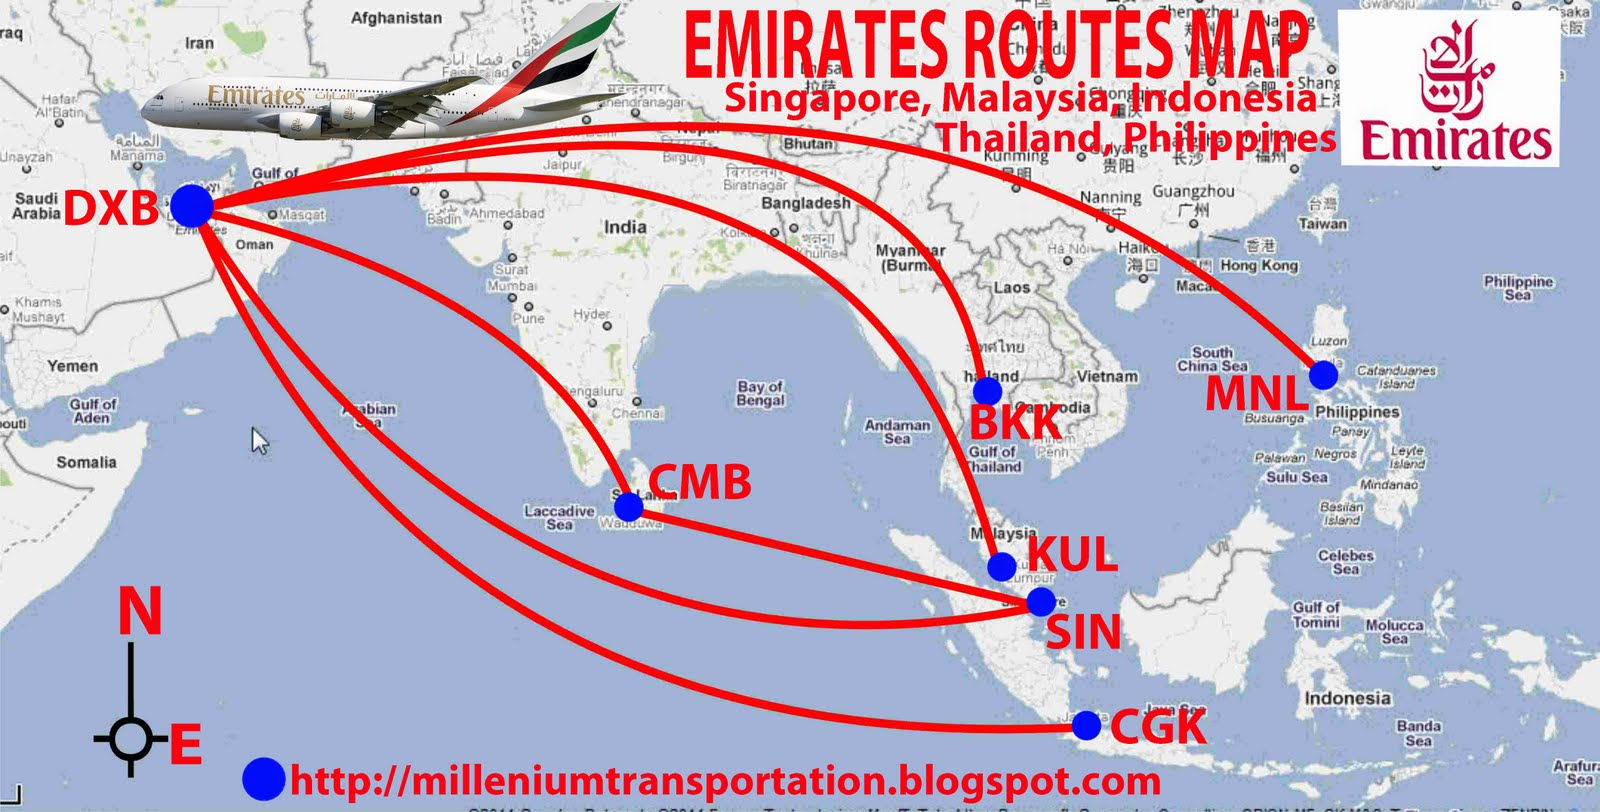 Civil aviation emirates flight routes to southeast asia emirates flight routes to southeast asia gumiabroncs Choice Image